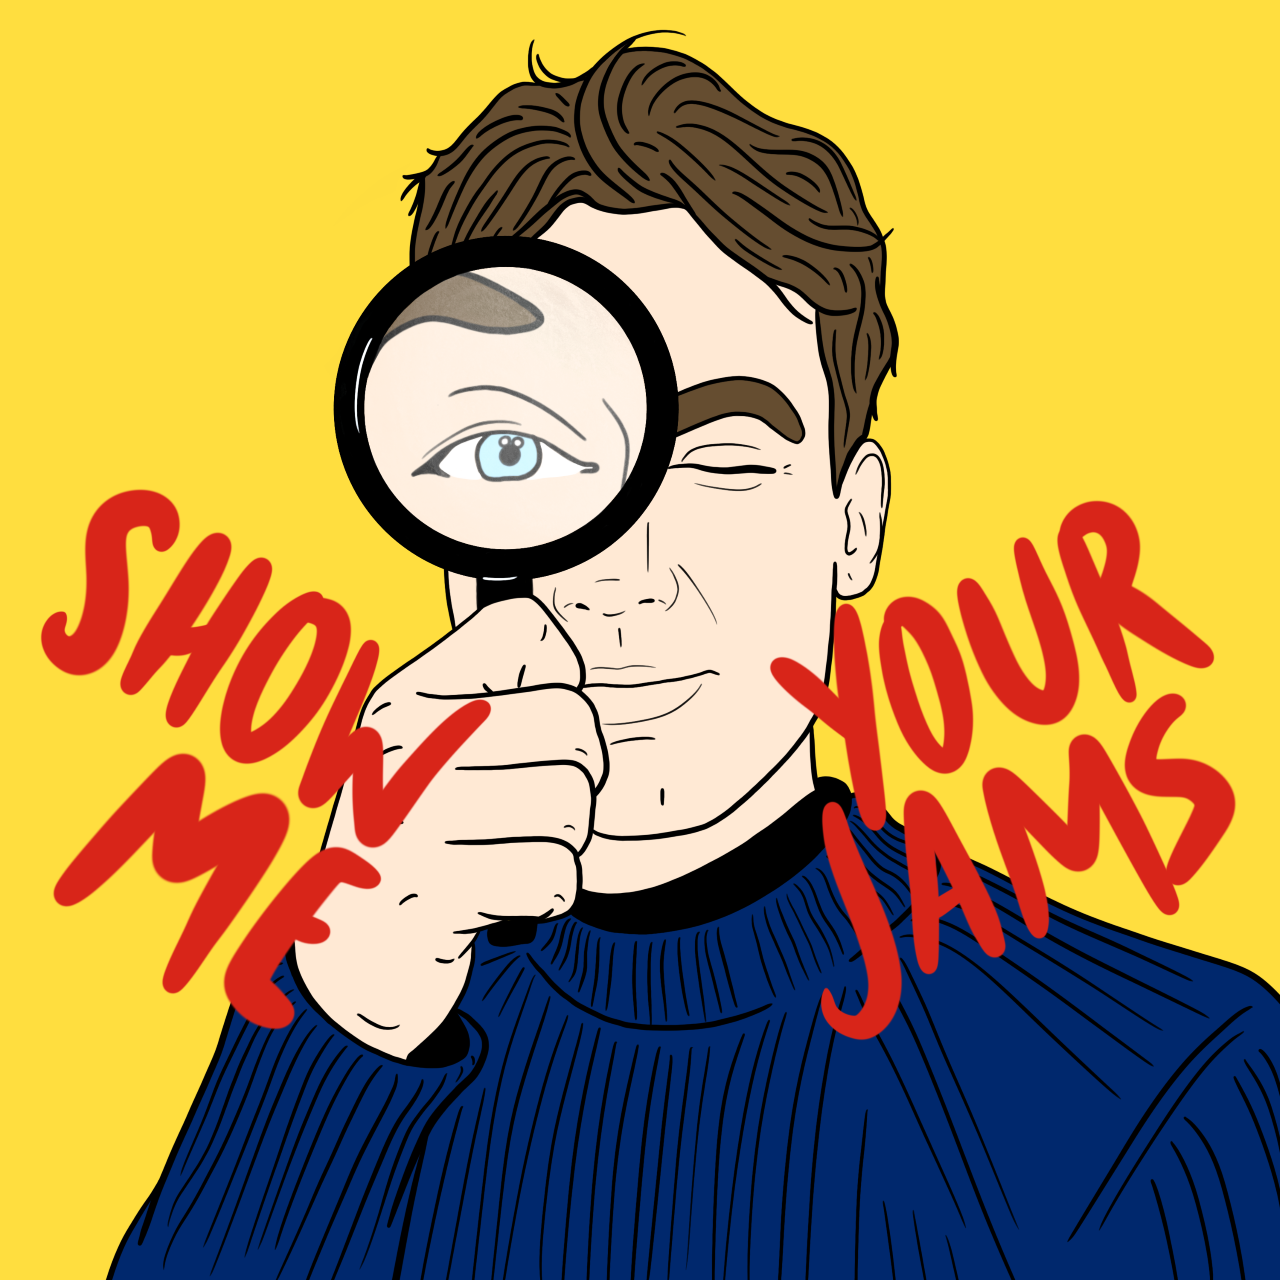 - I started a new podcast called Show Me Your Jams. I wanted to have in-depth discussions with Vancouver-based musicians and composers about how they write music, how they get ideas, and how their songs came to be. The first season will be five episodes, two of which are up now as of this post. In season one I talk to Future Star, Spencer Hargreaves (Jock Tears, The Trolls, Terry Maple), Smithy Ramone (Smithy Ramone, Jock Tears, Wut), Ridley Bishop (Ridley Bishop, The Trolls, rocket 6, Graphic Light), and Robyn Jacob (Only A Visitor).It's available onItunesSoundcloudTumblr